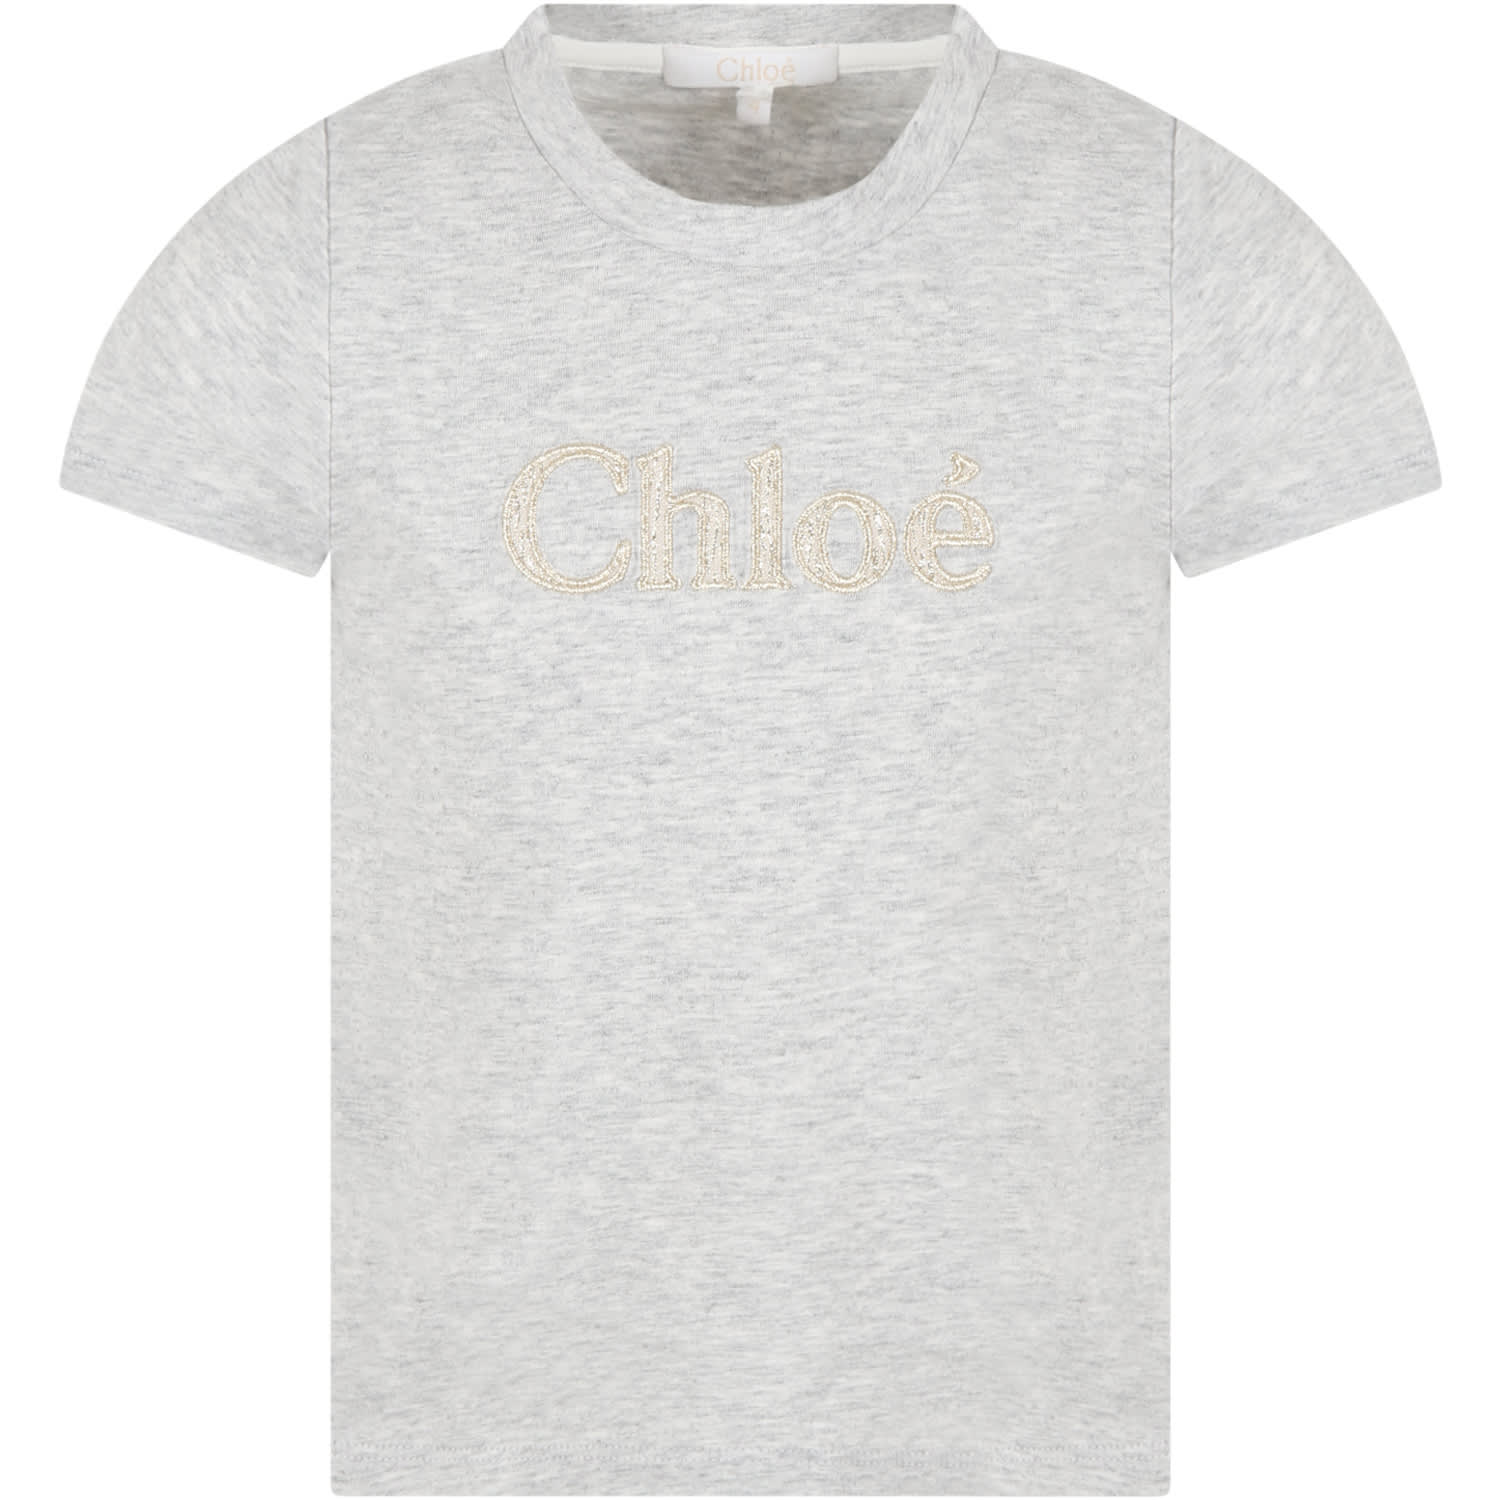 Chloé Kids' Grey T-shirt For Girl With Logo